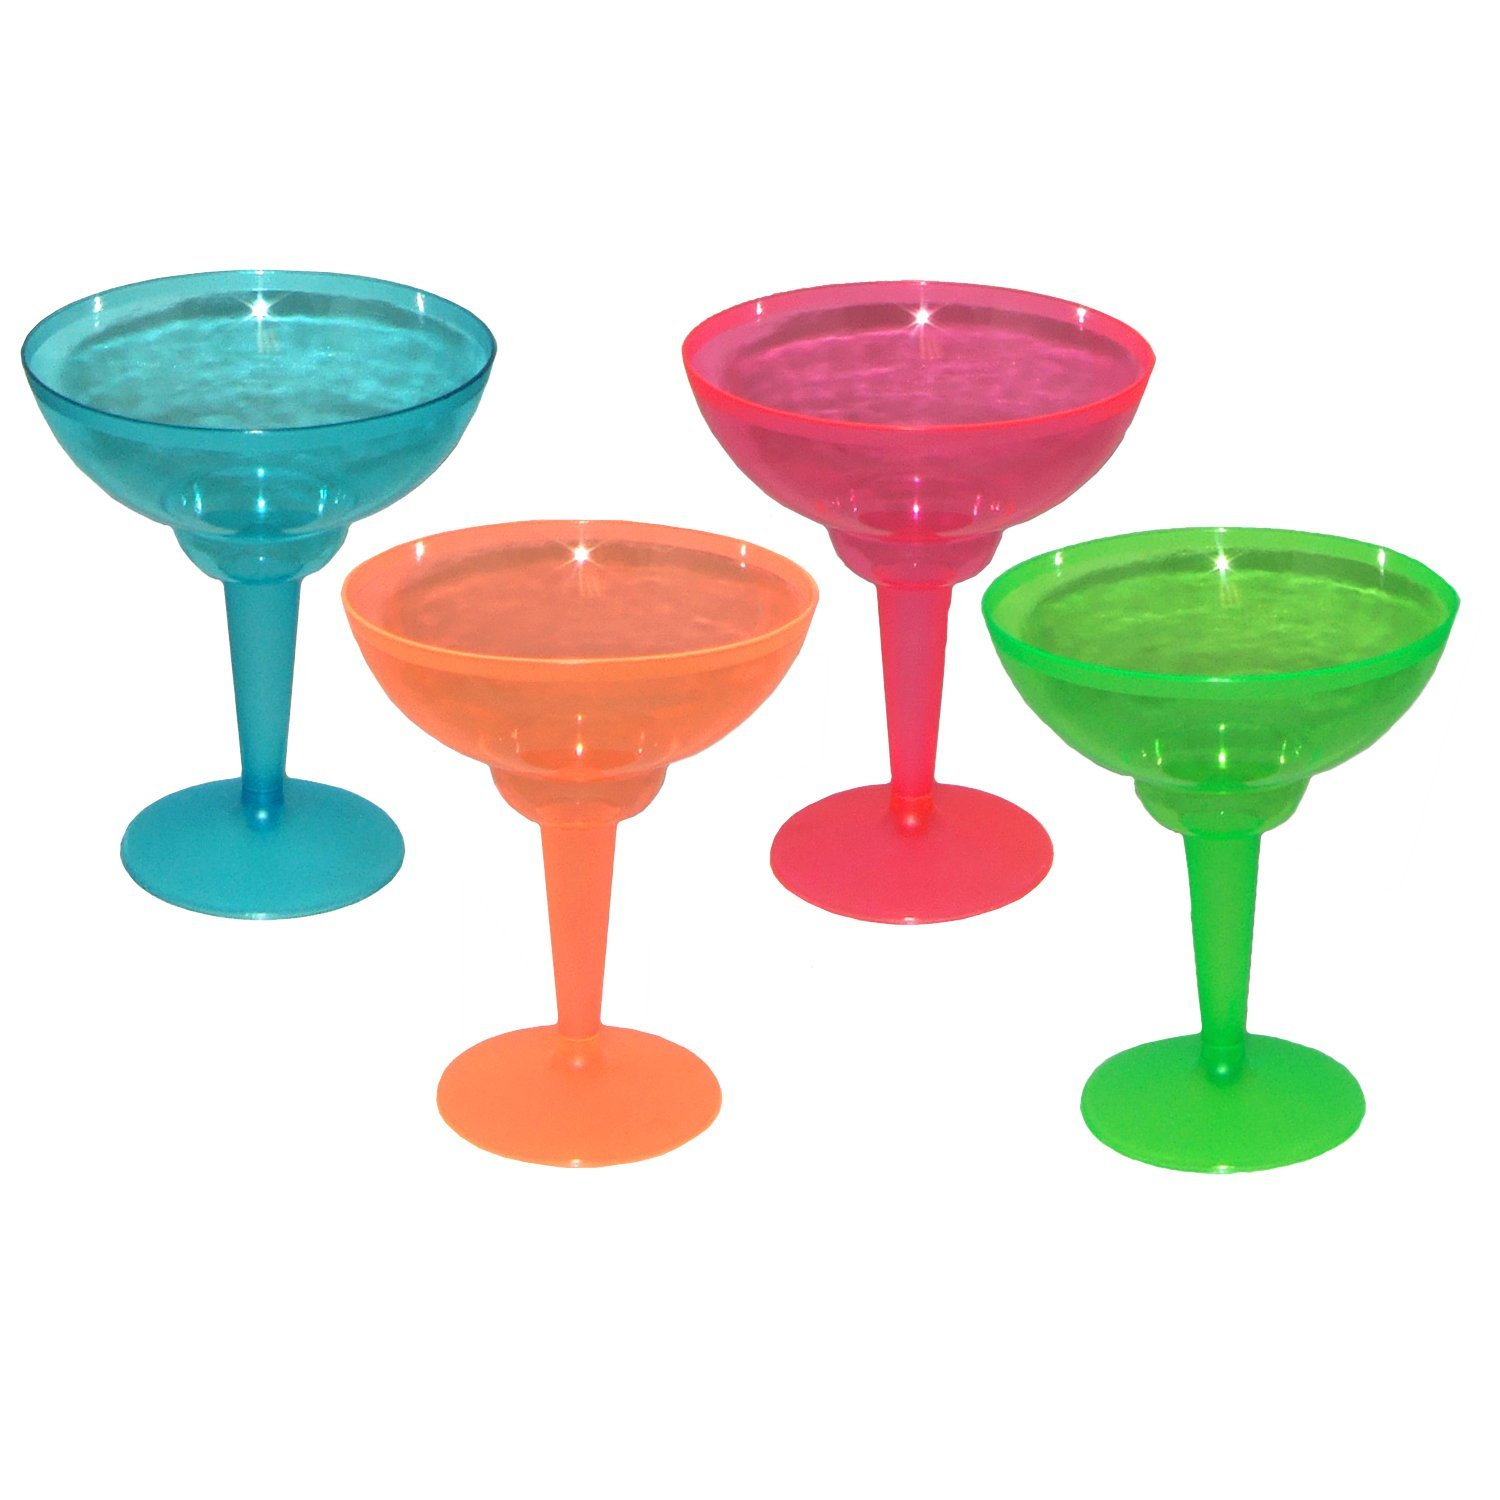 Party Essentials N121290 Brights Plastic 2-Piece Margarita Glass, 12-Ounce Capacity, Assorted Neon Pink/Green/Blue/Orange (Case of 144)